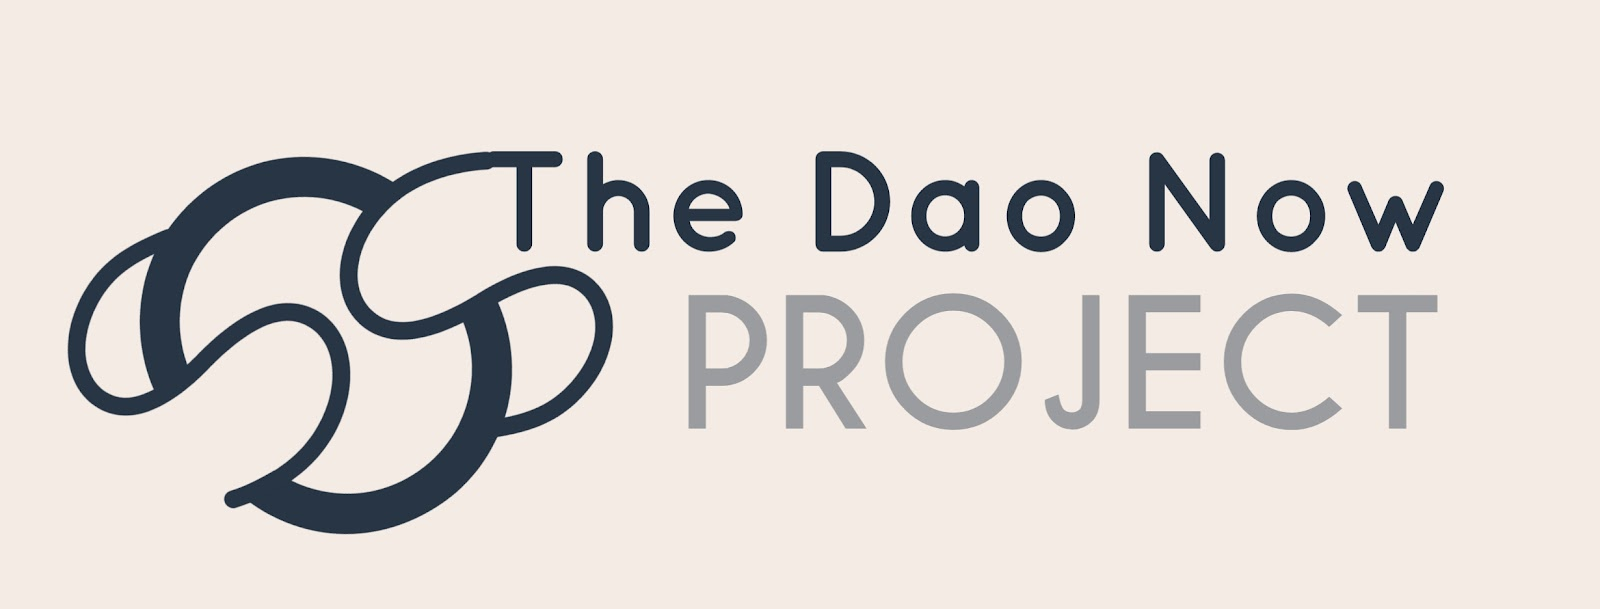 The Dao Now Project